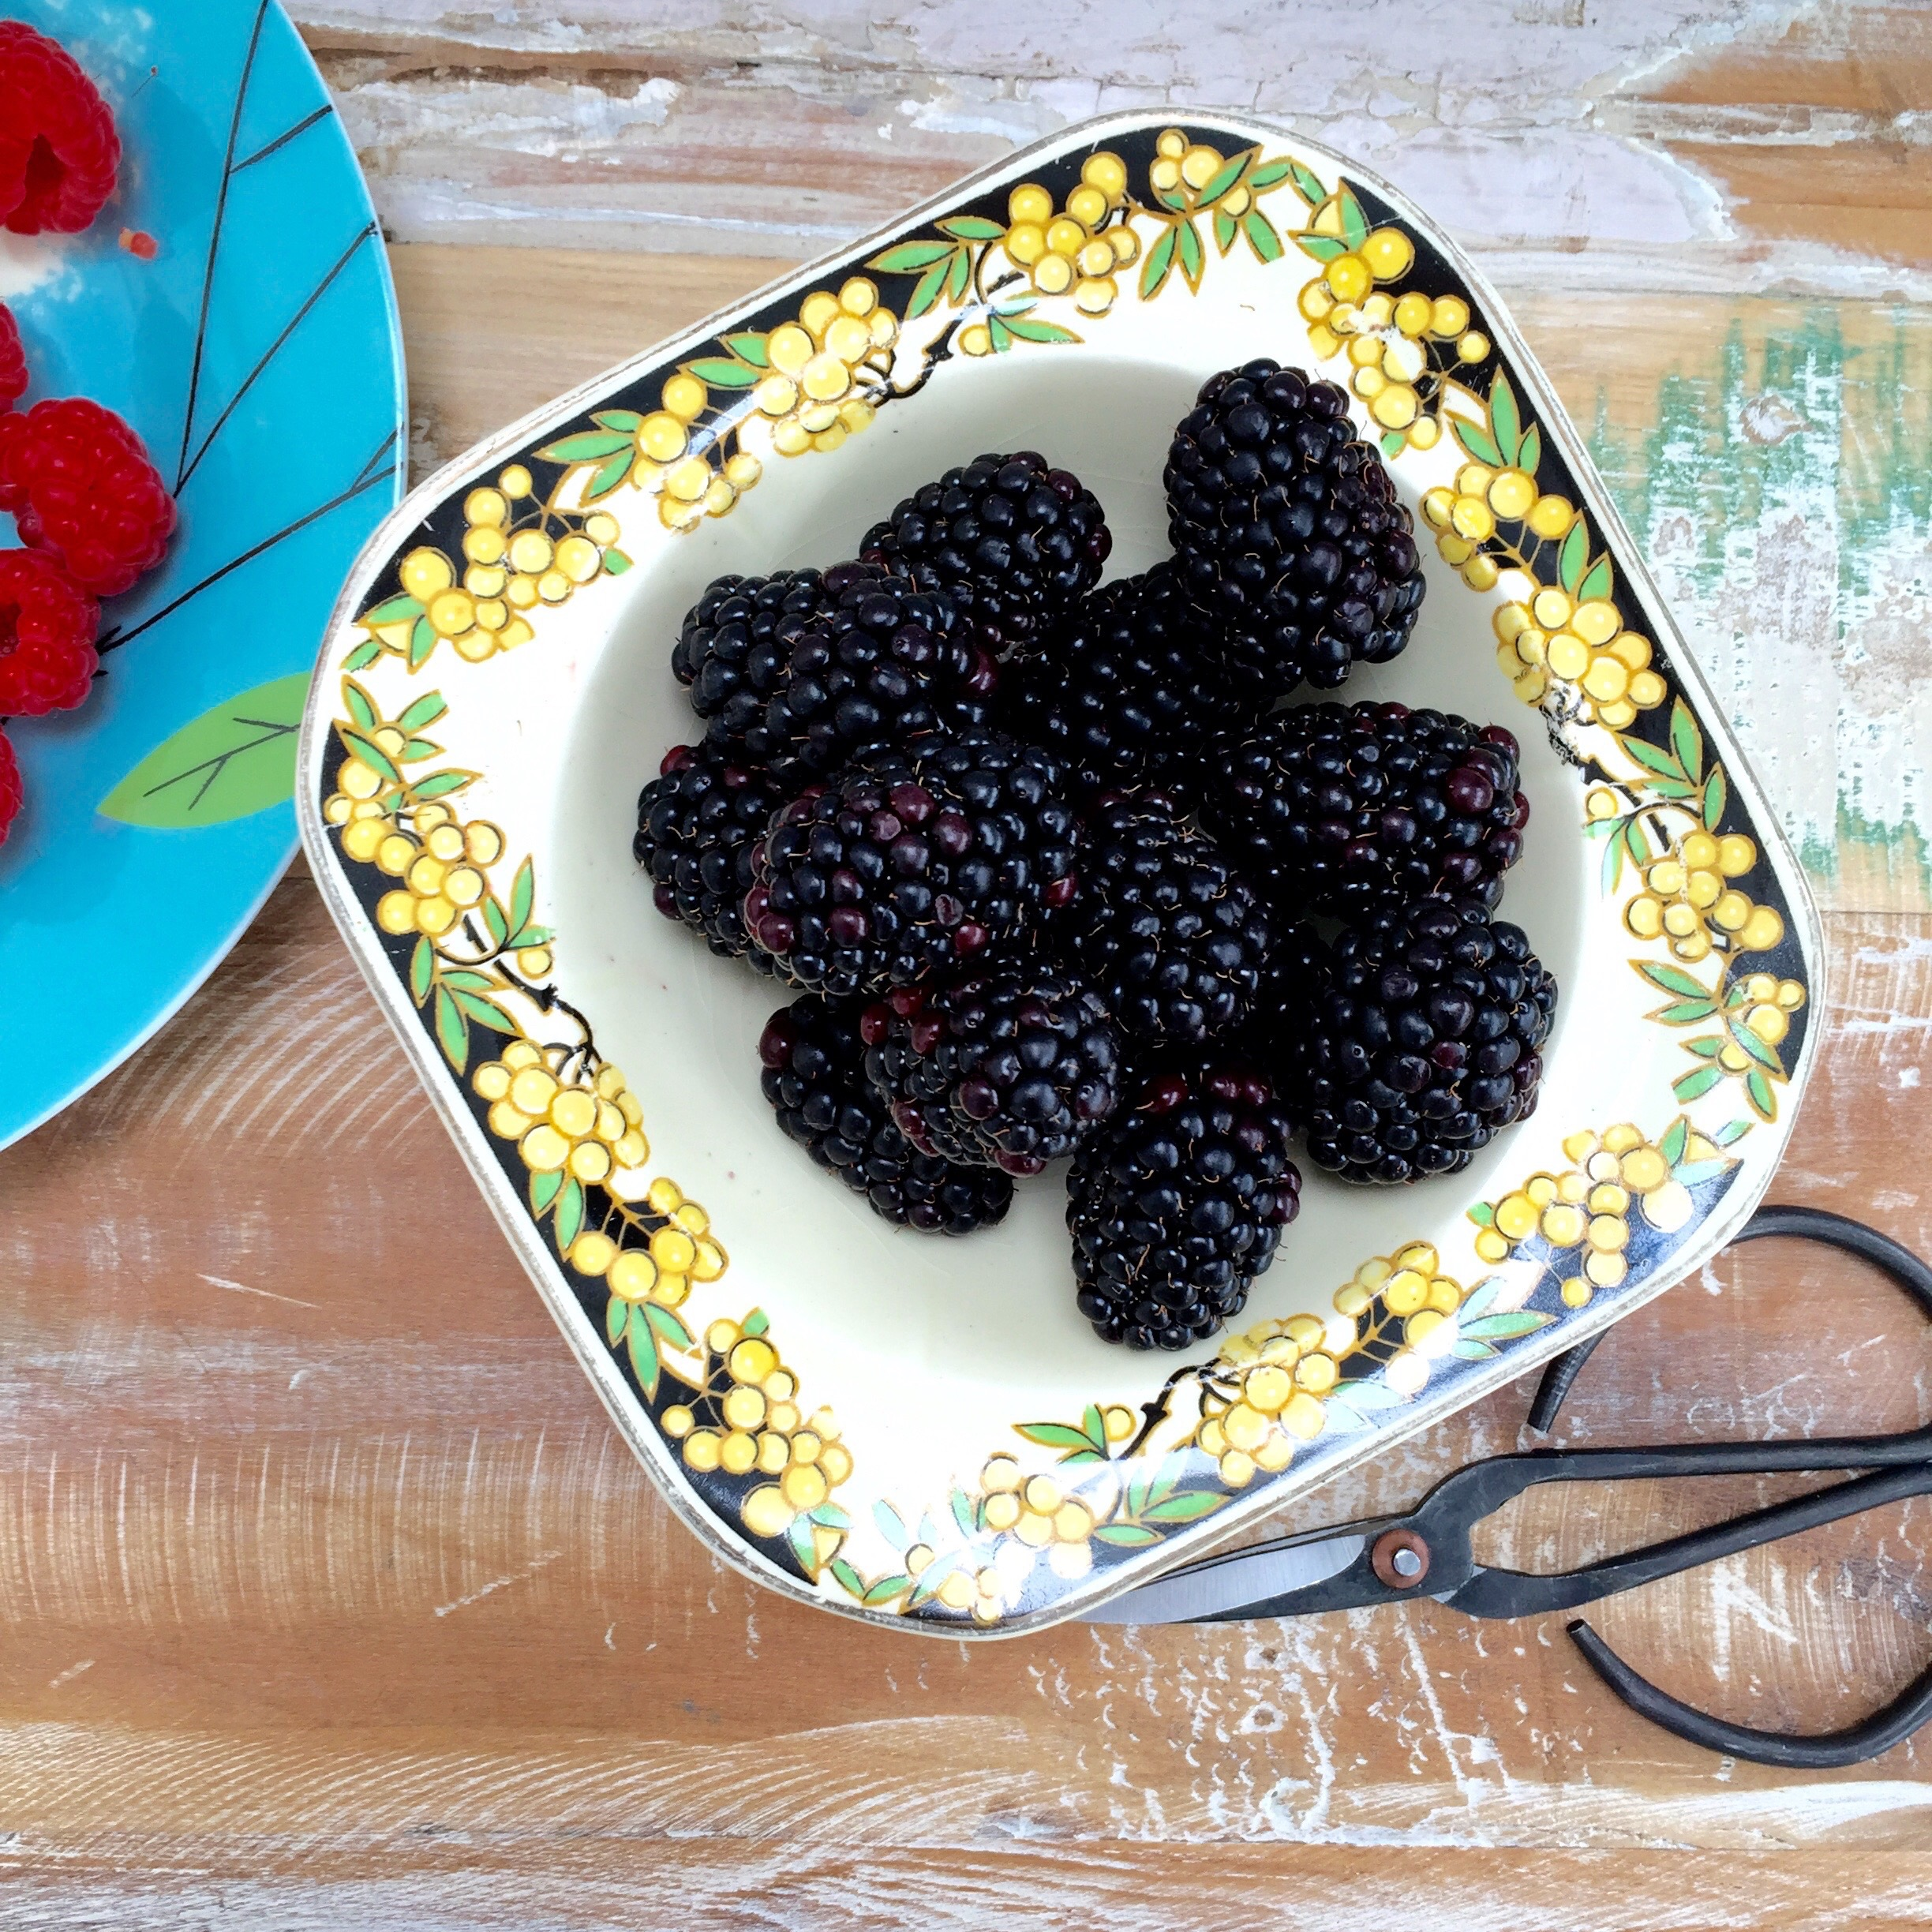 All berries are packed full of antioxidants and will give you a big boost of health.